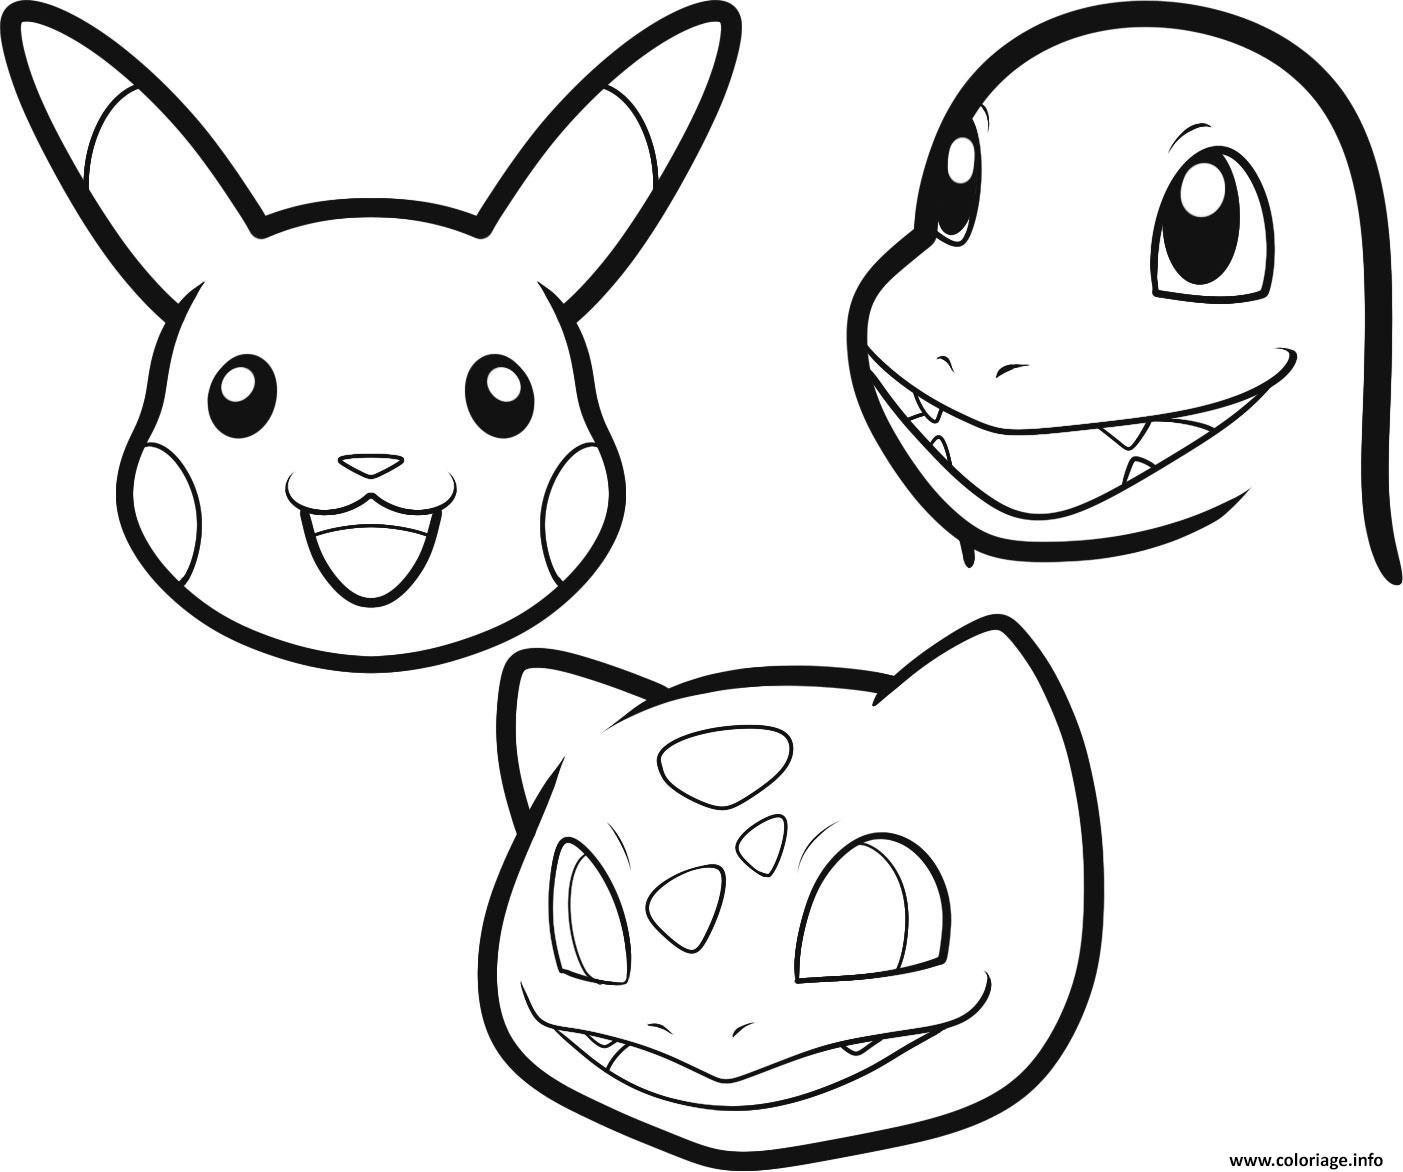 Dessin Facile Pokemon Colorier Les Enfants Marnfozinecom